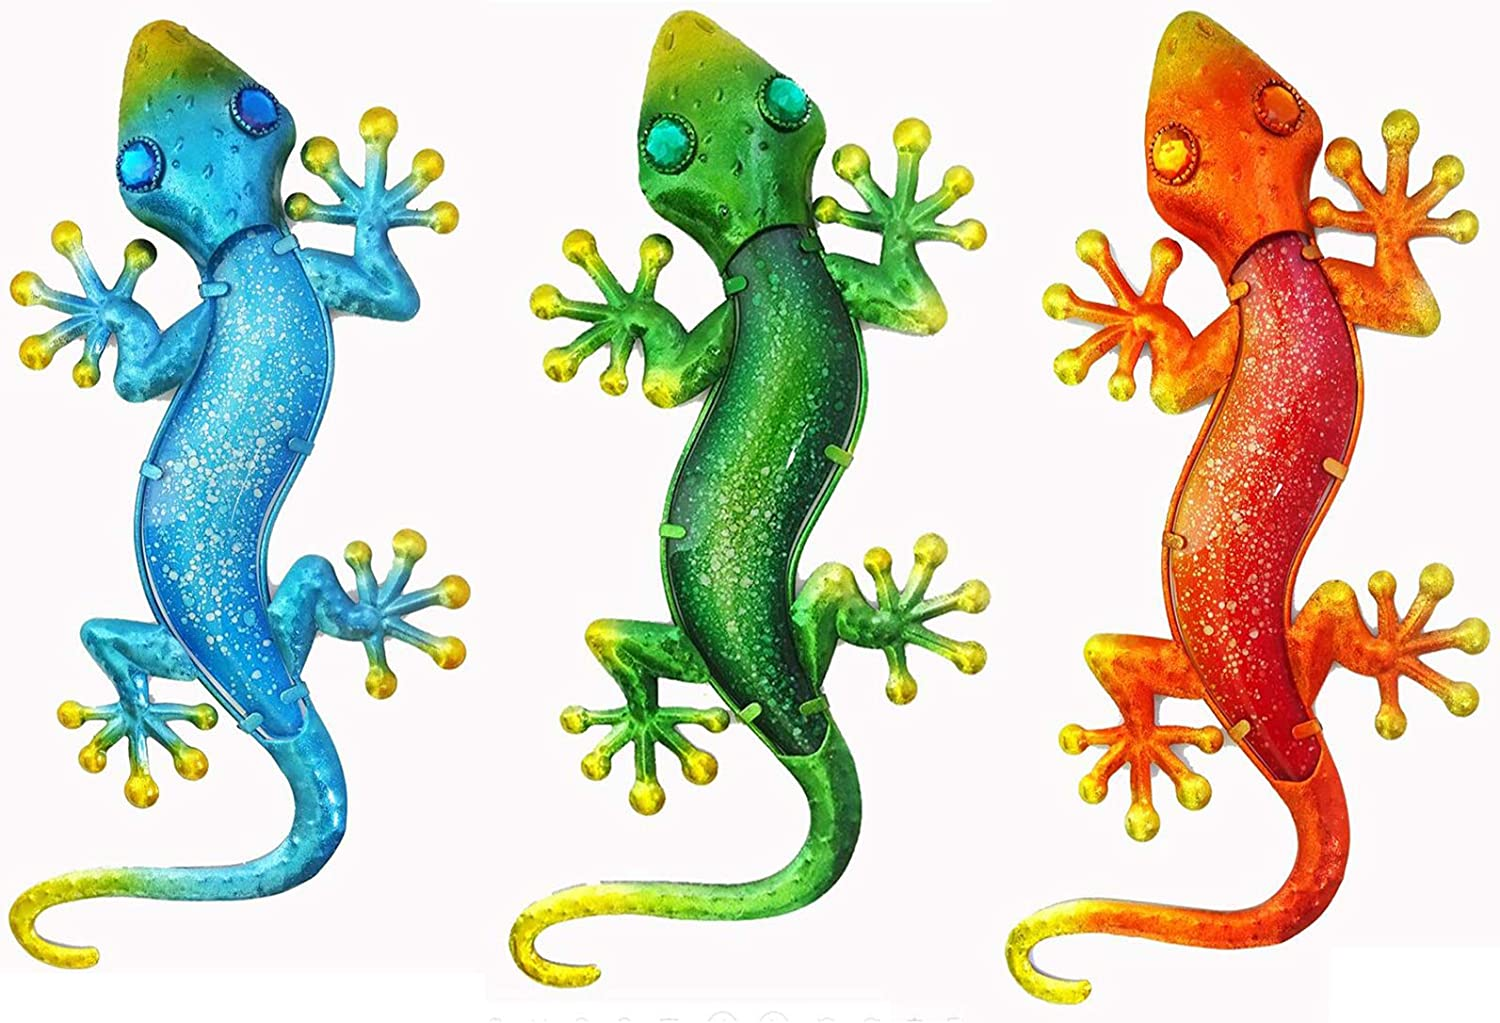 LiffyGift Max 73% OFF Metal Gecko Wall Special price for a limited time Sculptures Outdoor Garden Lizard Art